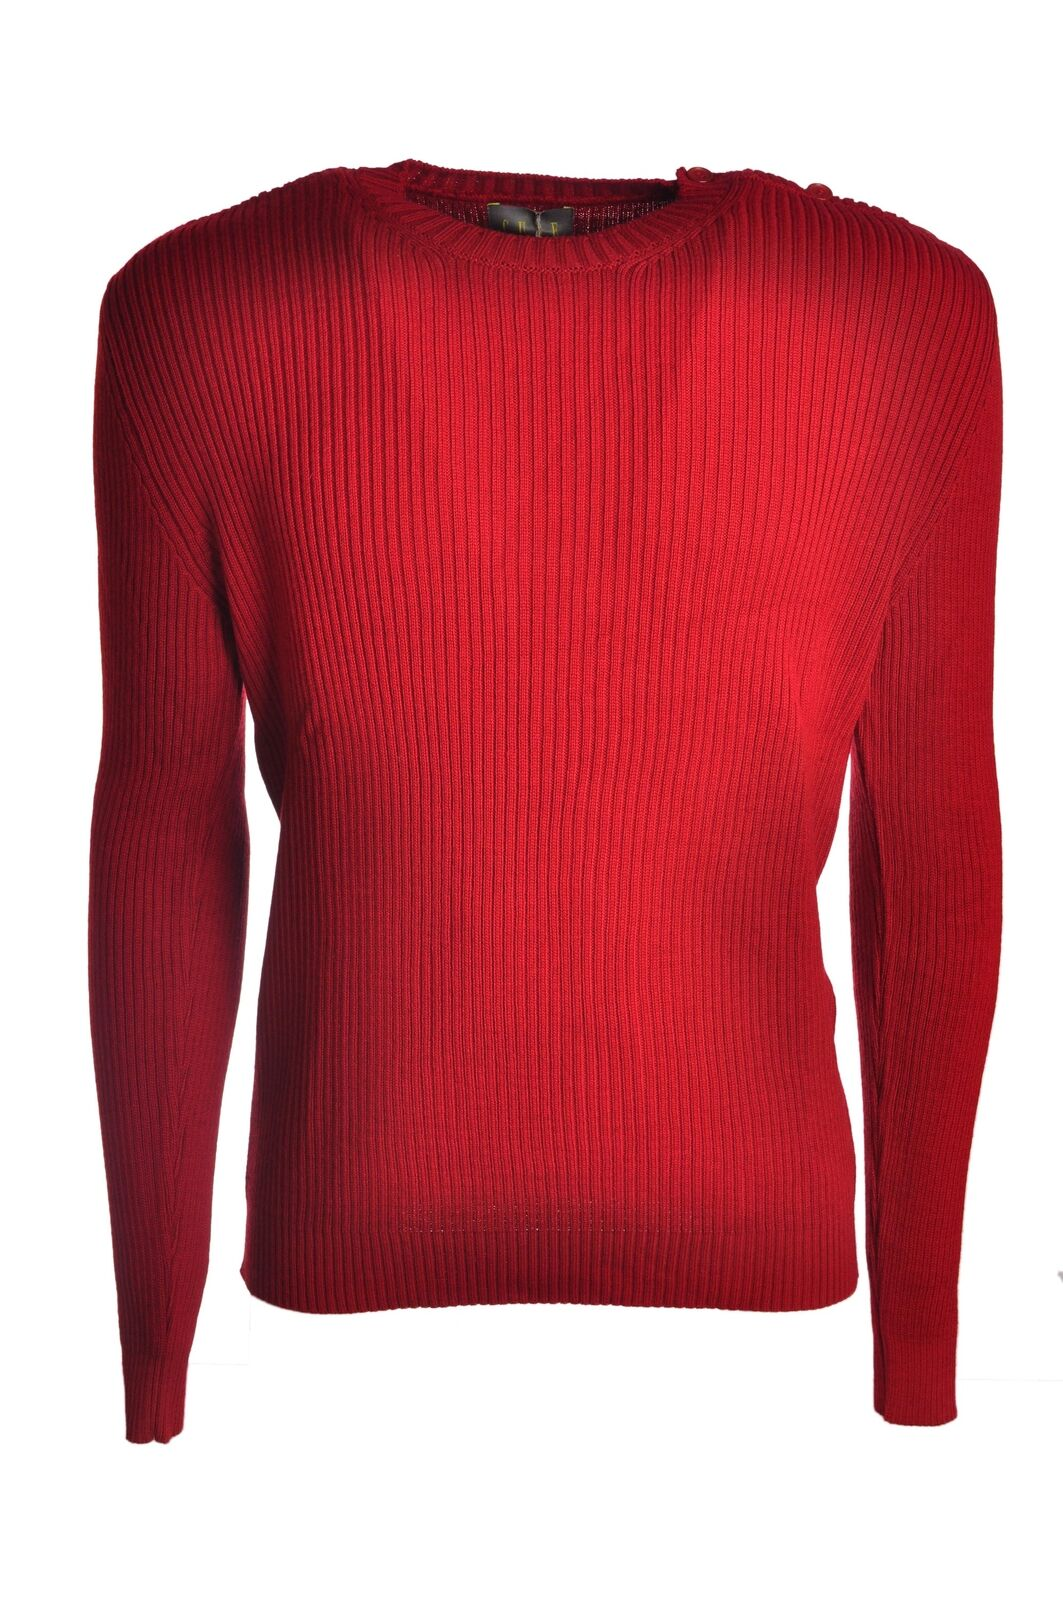 Cube  -  Pullover -  Herren - Rosso - 4366226A184133